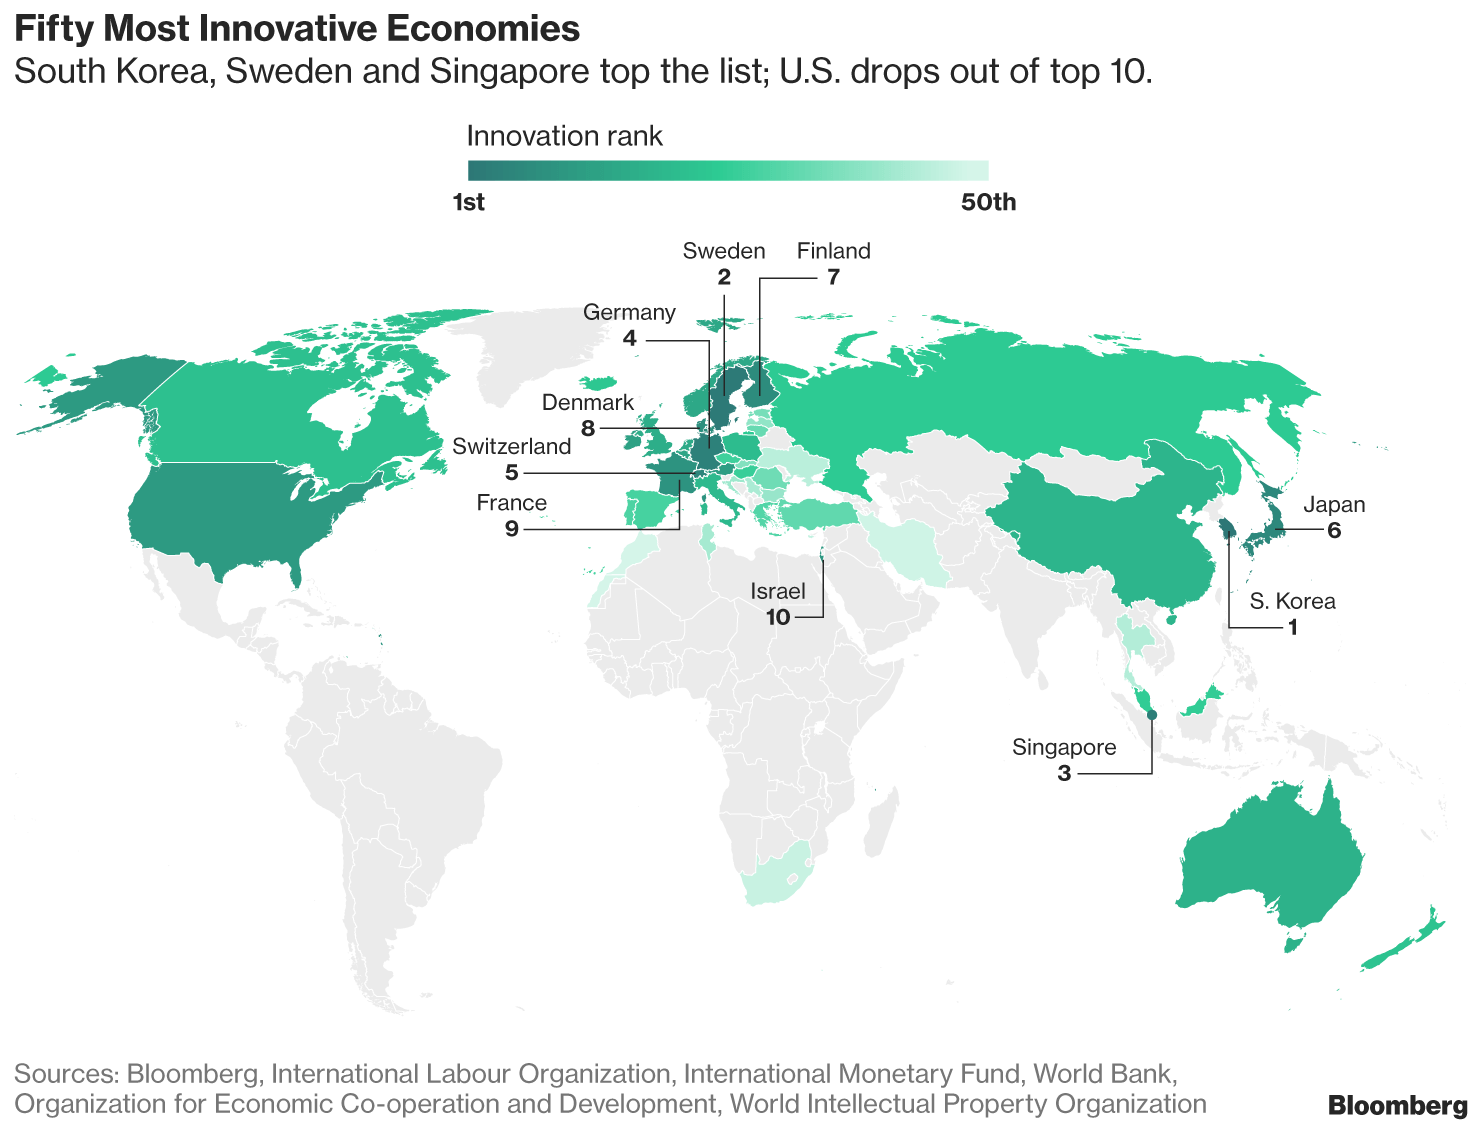 Austria achieved 12th place on Bloomberg's 2018 Innovation Index